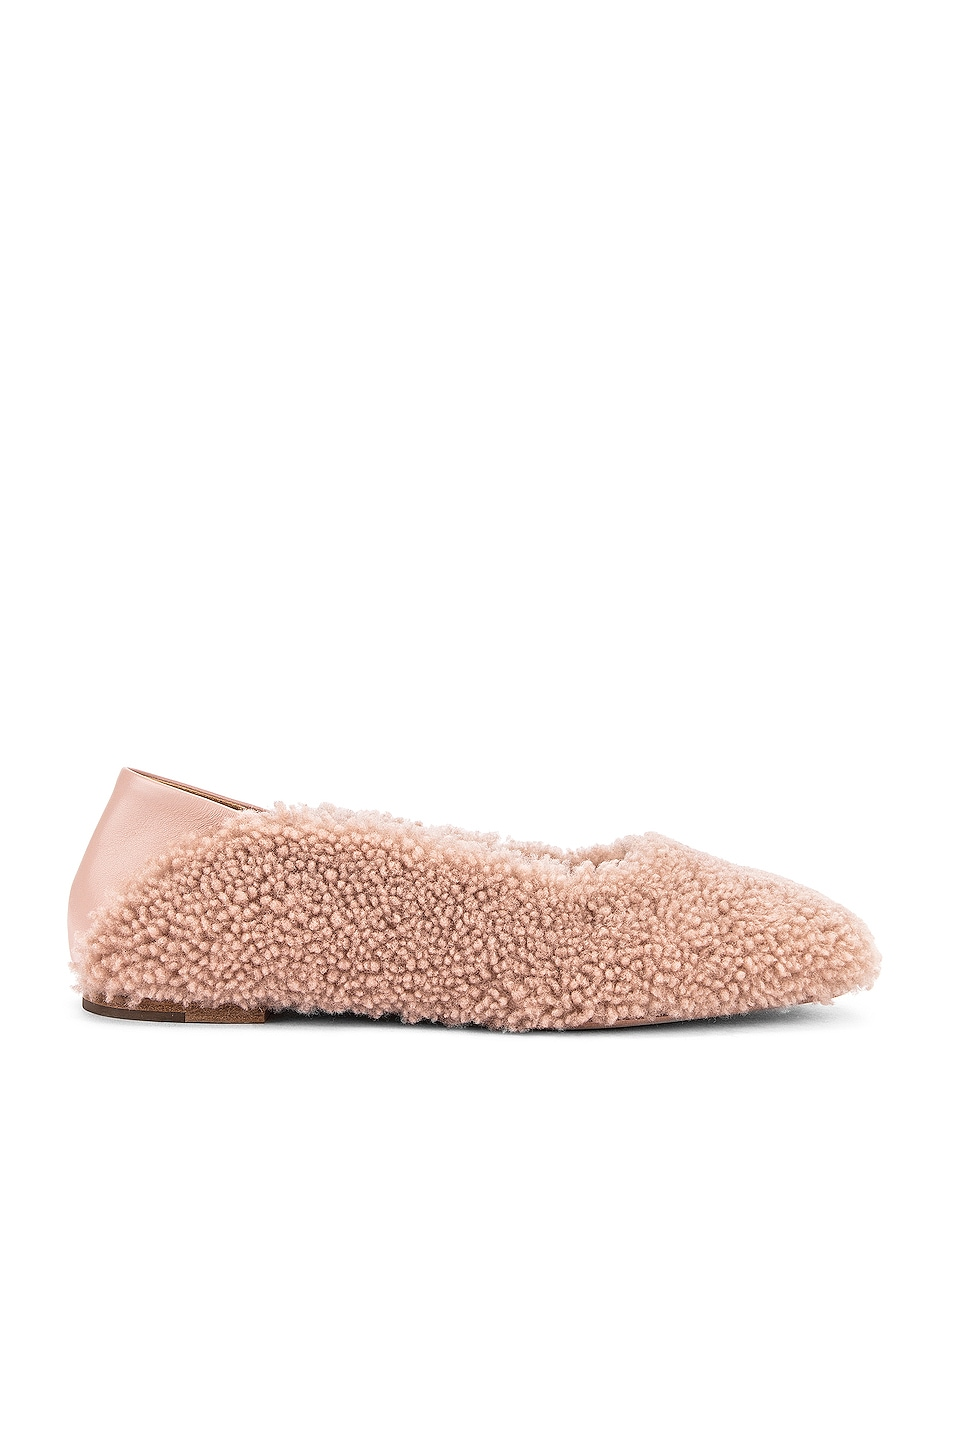 Image 1 of Rosetta Getty Shearling Loafers in Dusty Pink